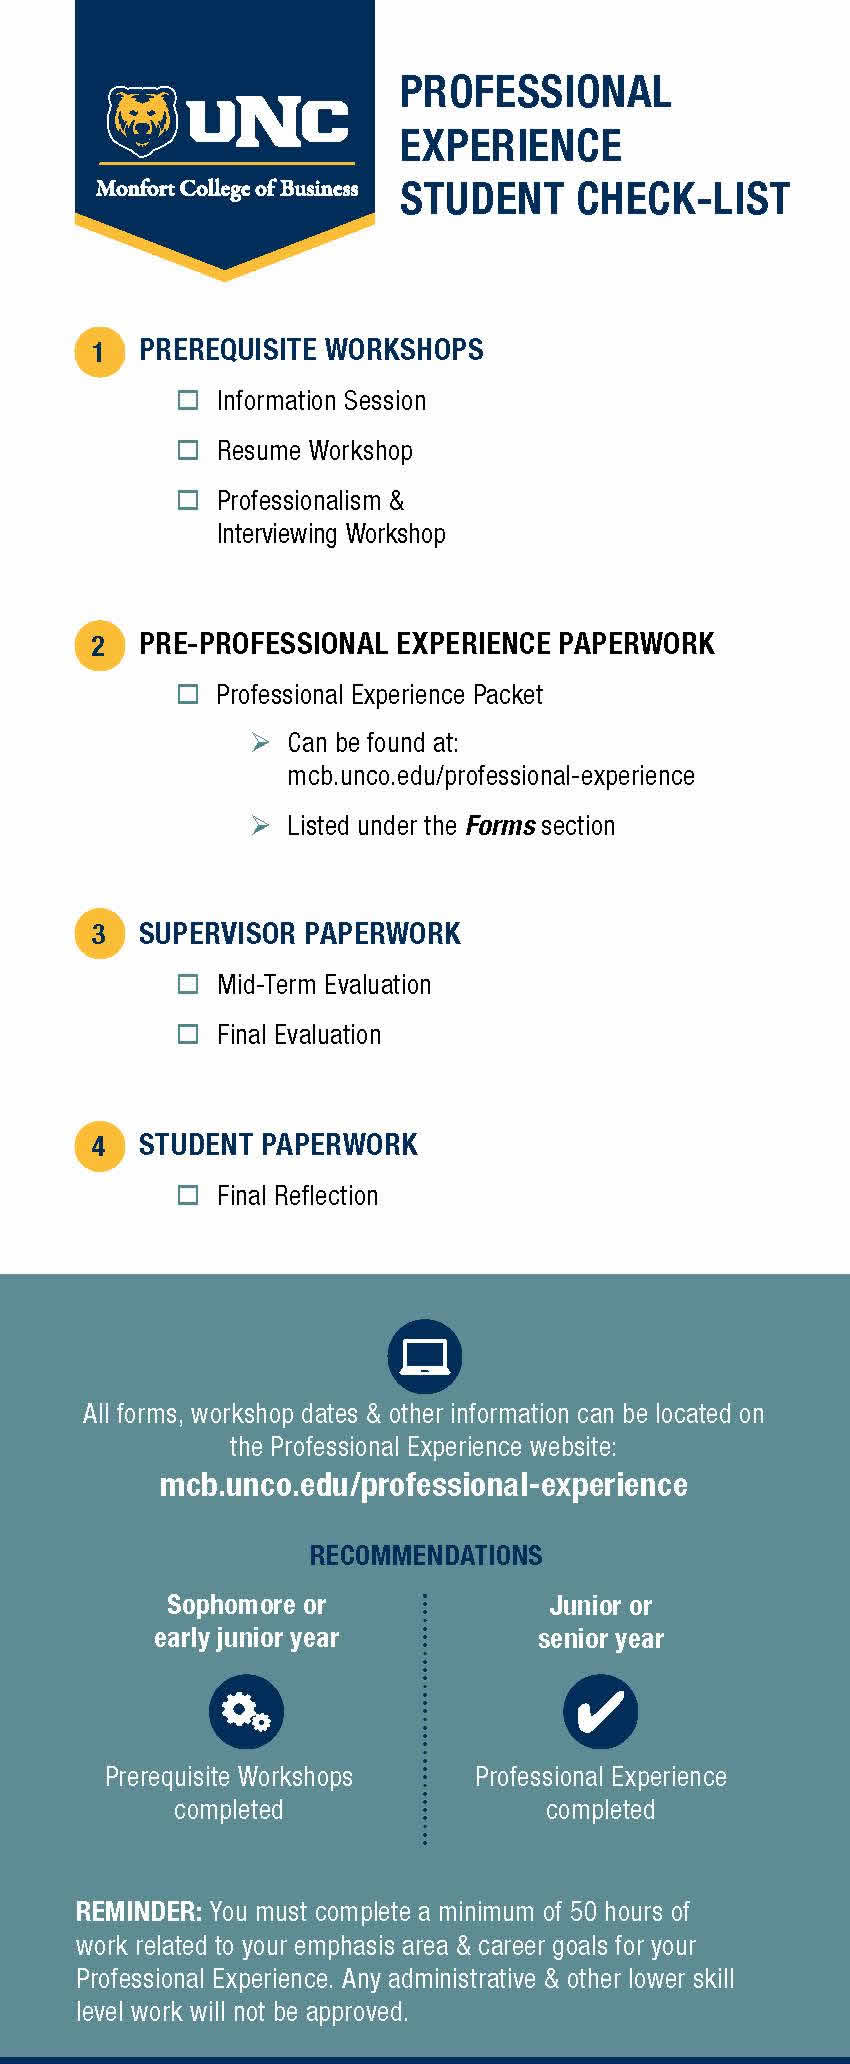 professional experience leads to future success